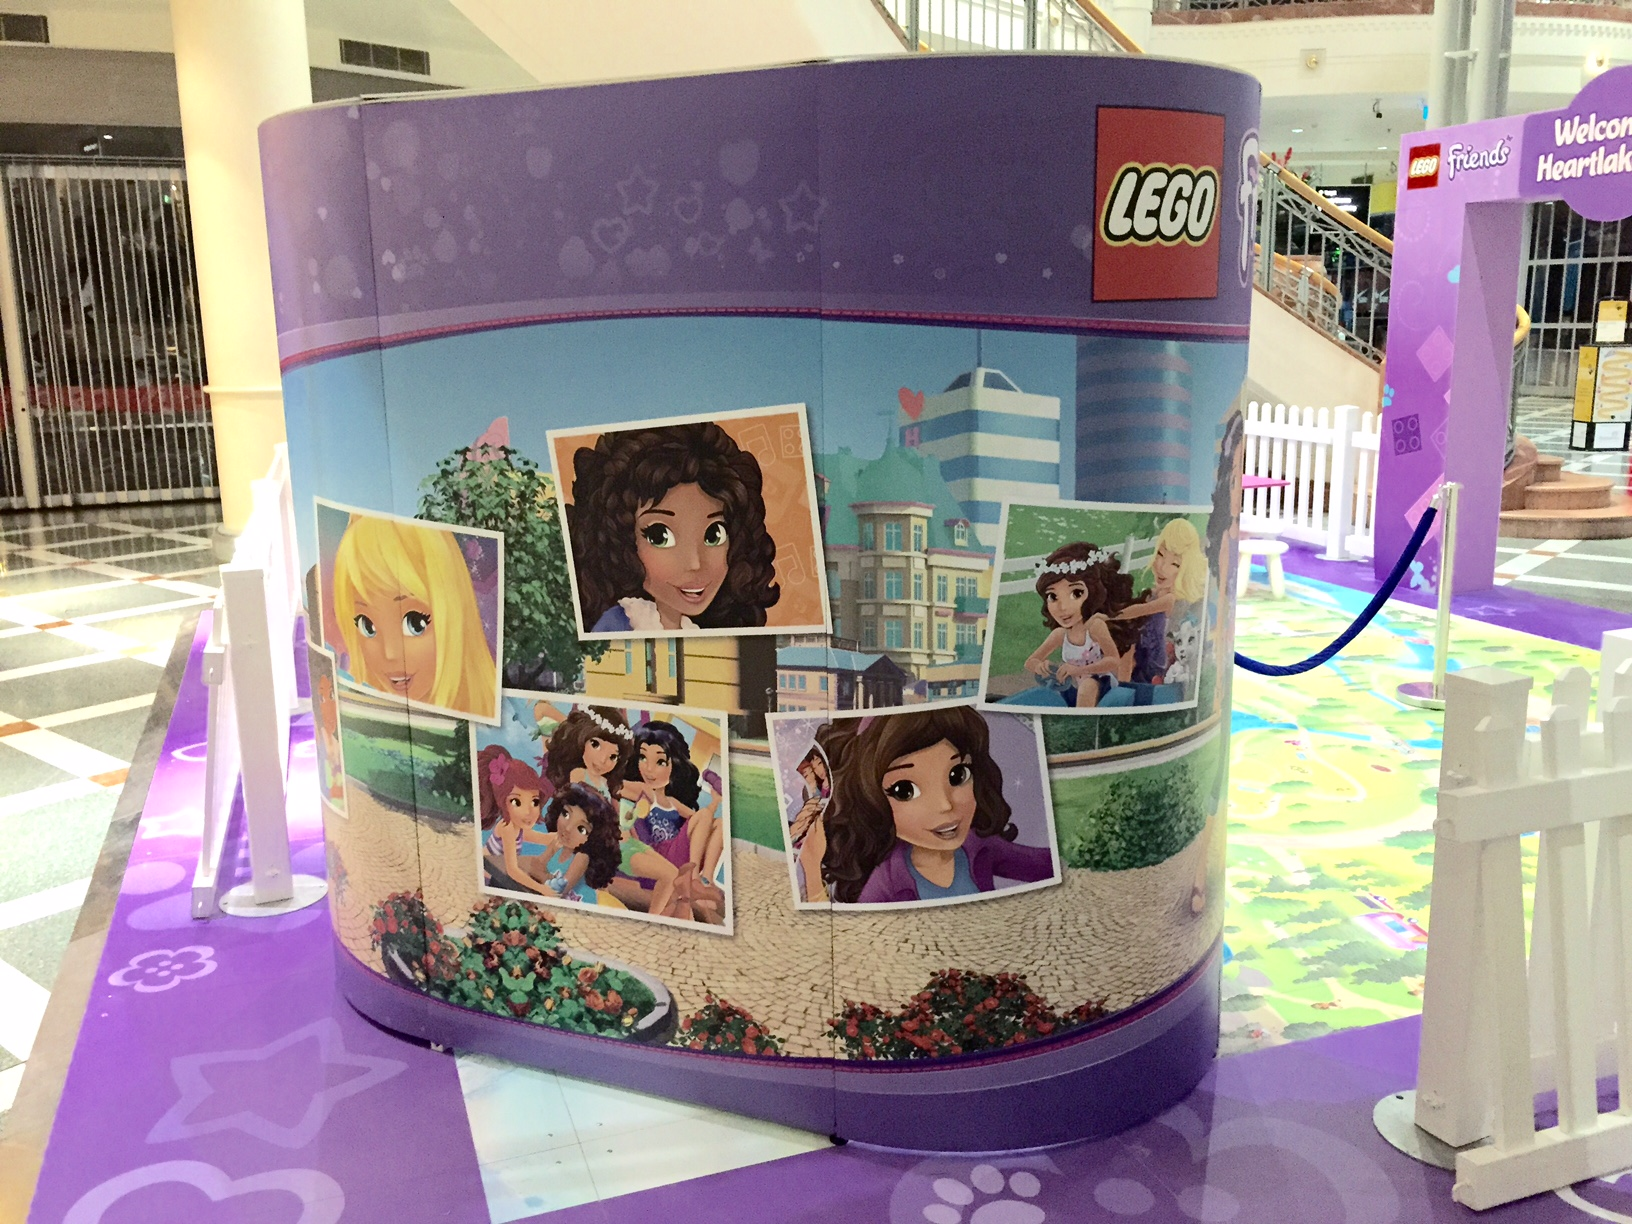 Lego photo booth back